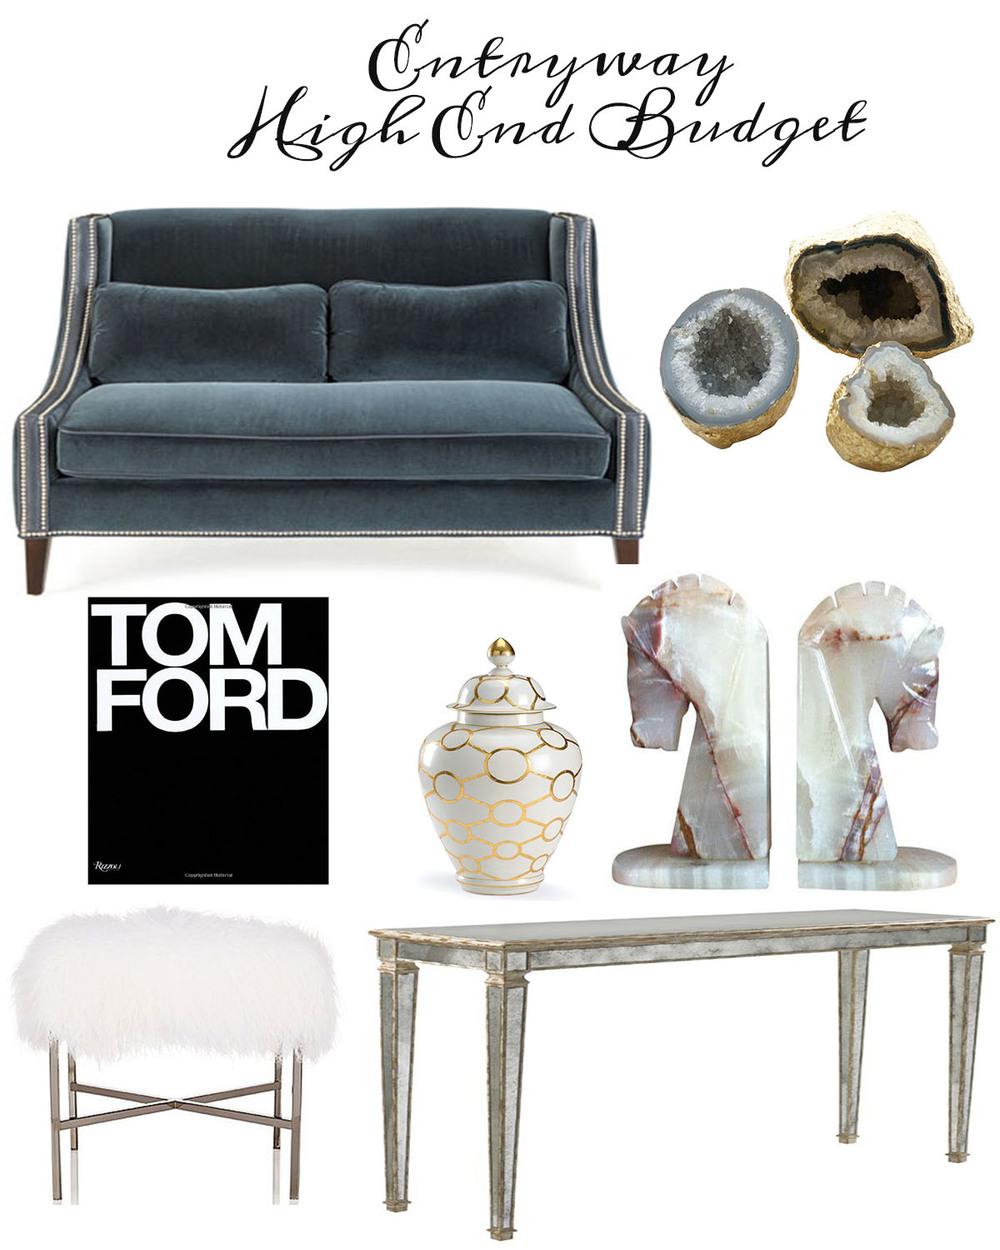 High End Look:  Console // Tibetan Lamb Stool/ / horse bookends/ / Jar // Book // Gems // Settee